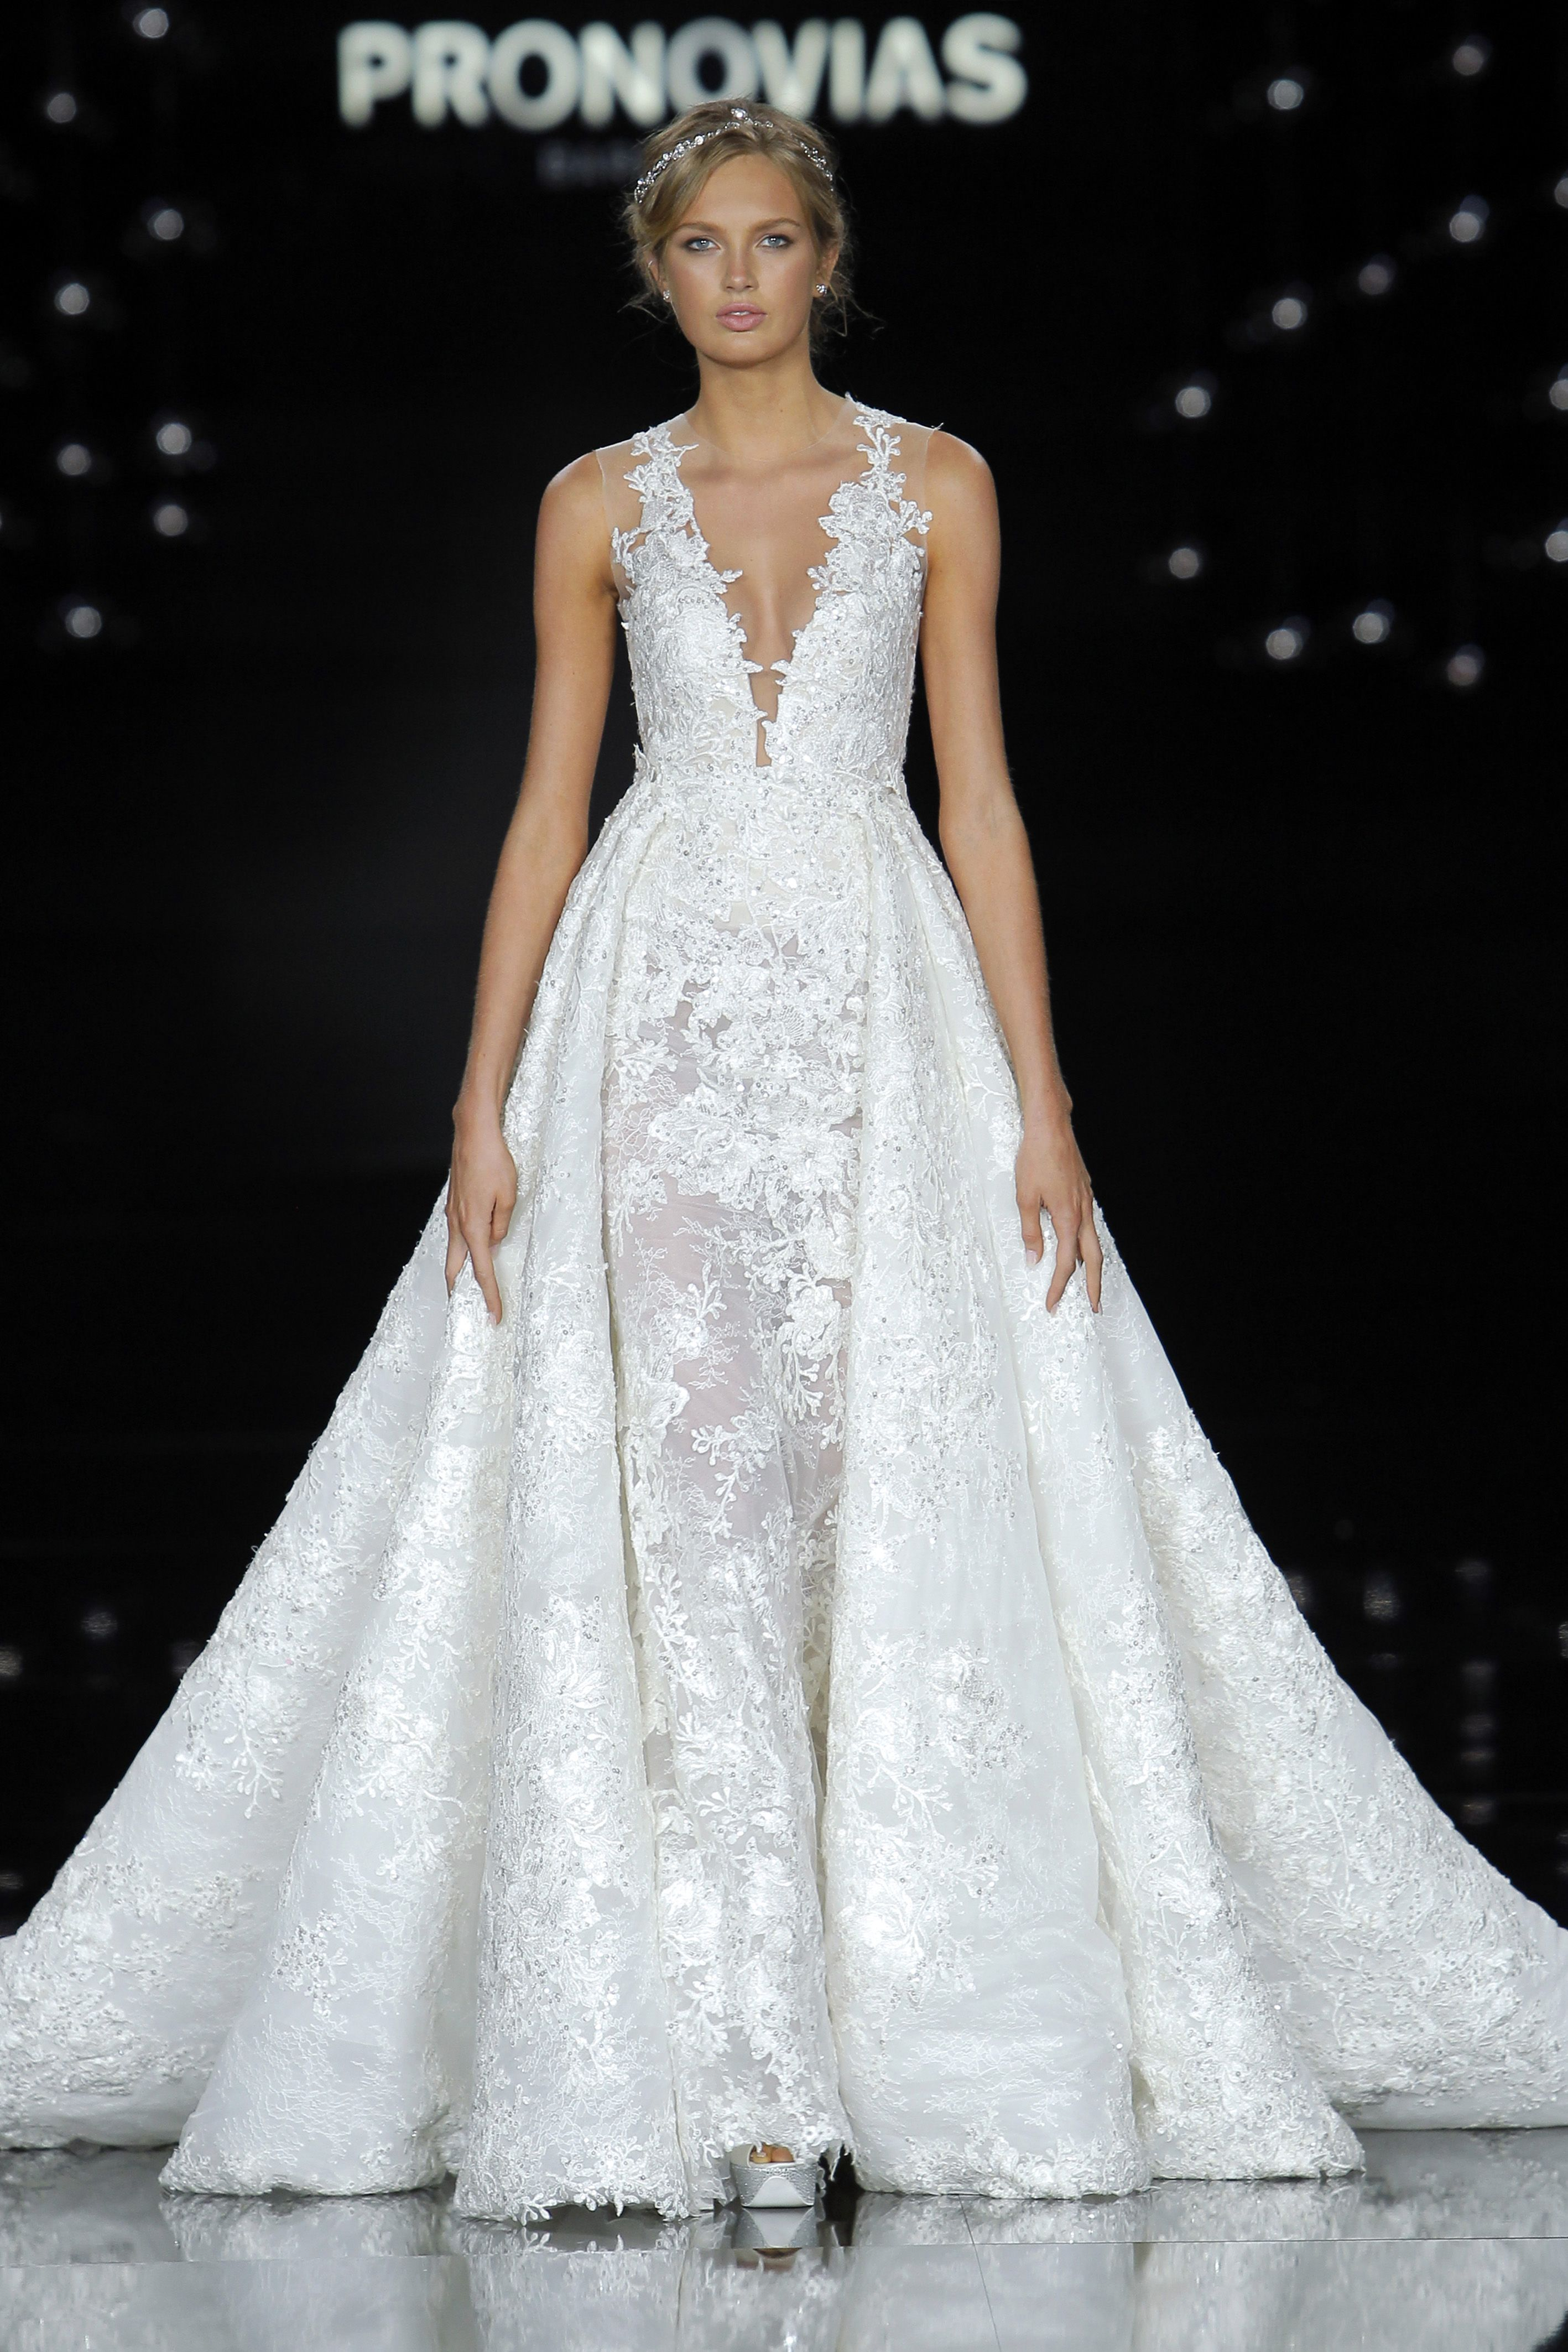 Cool Atelier Pronovias Spring Closed out Barcelona Bridal Fashion Week with a gorgeous collection of weightless gowns inspired by La Ciel or the sky